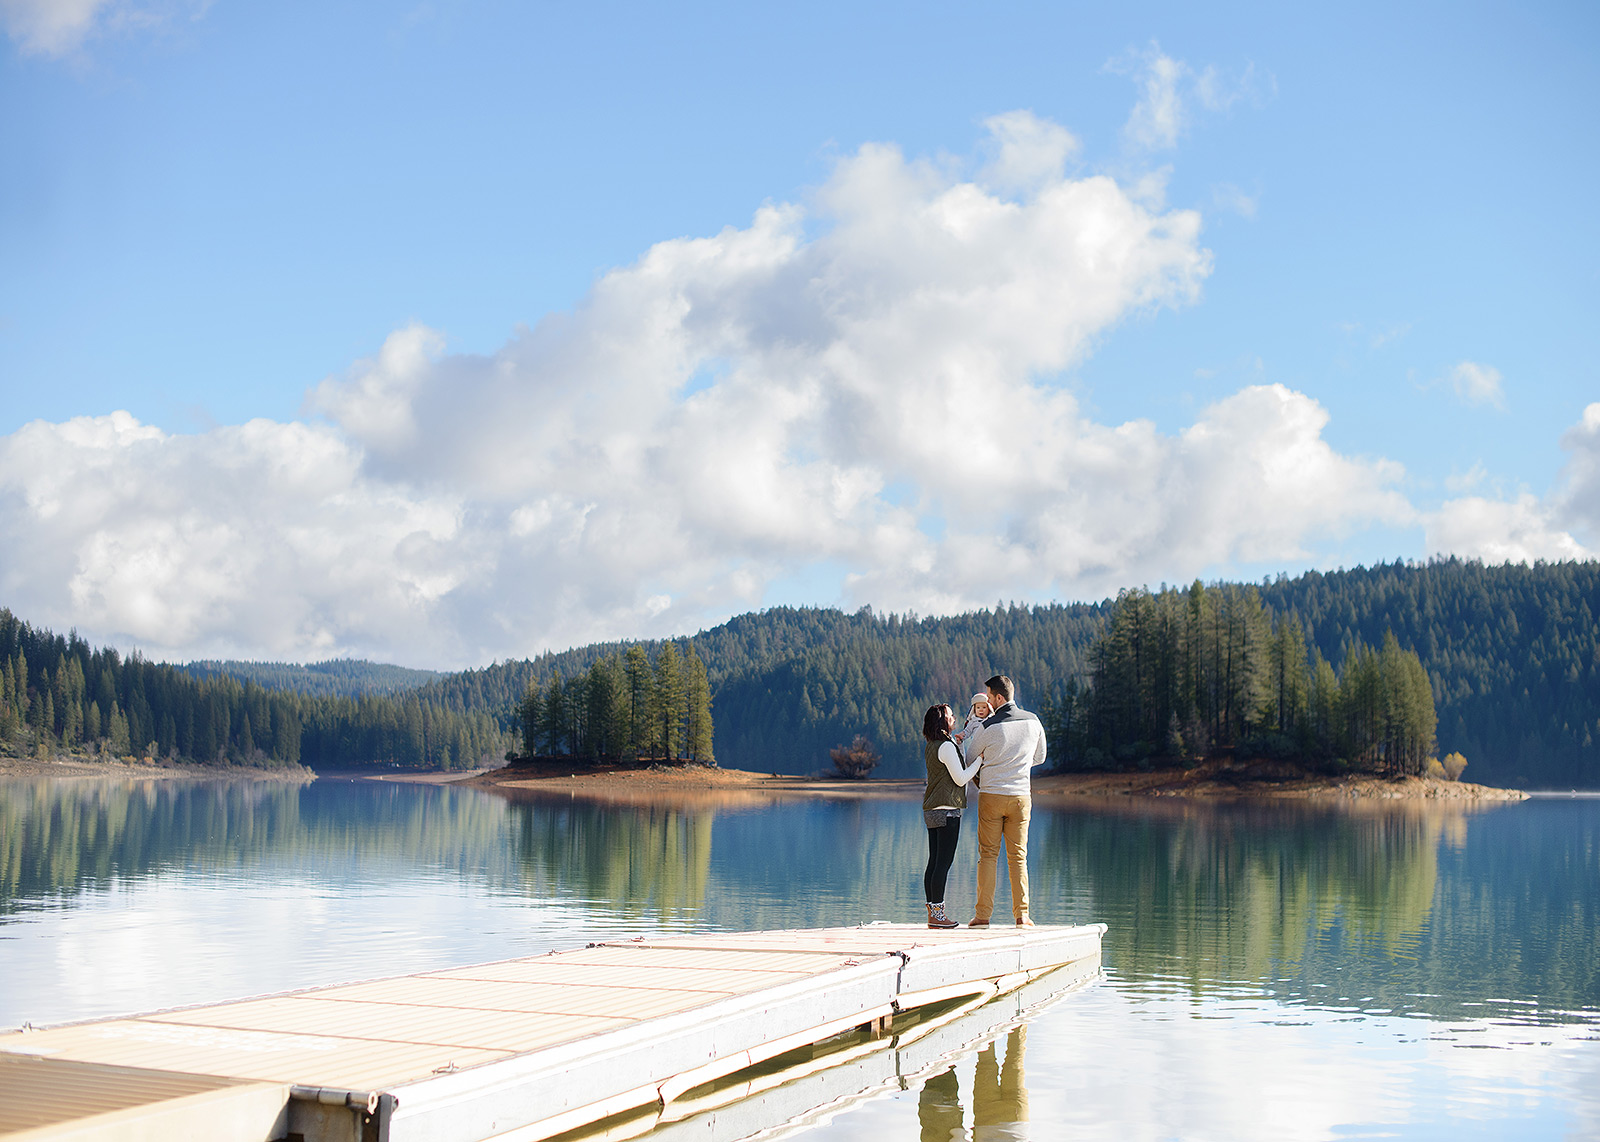 Scenic Family Photos Landscape by Lake in Pollock Pines